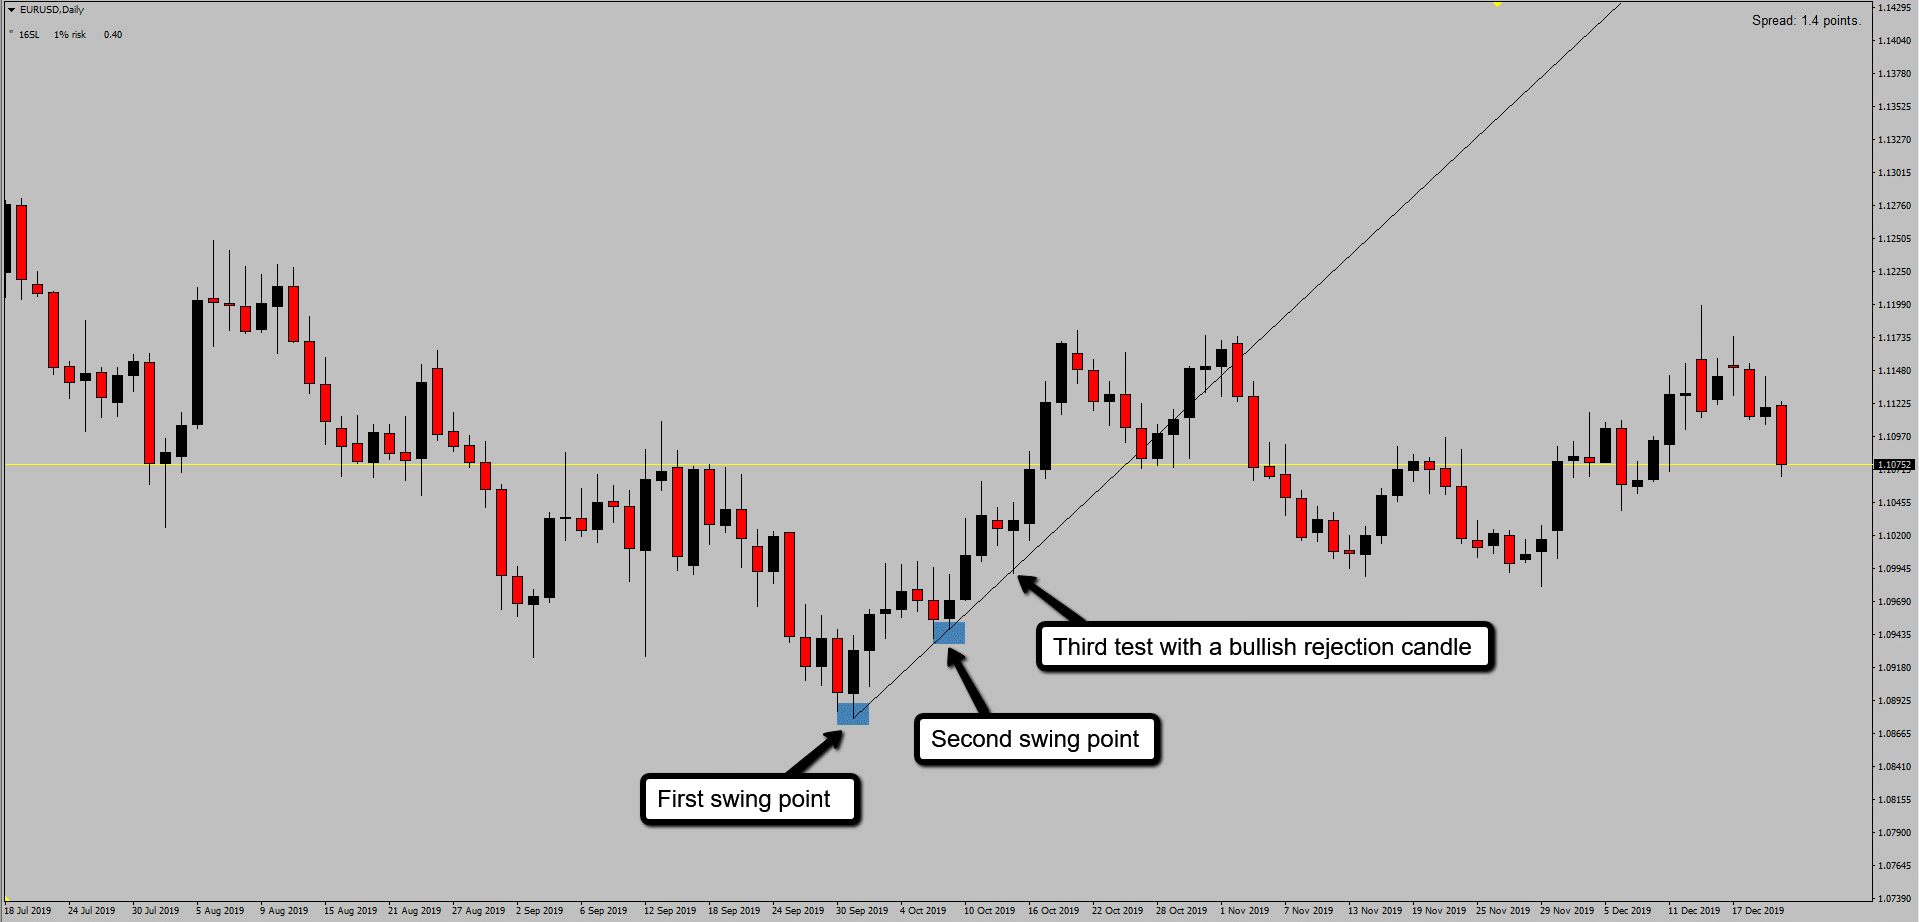 EURUSD Buy Trade Of A Bullish Trend Line With A Rejection Candle